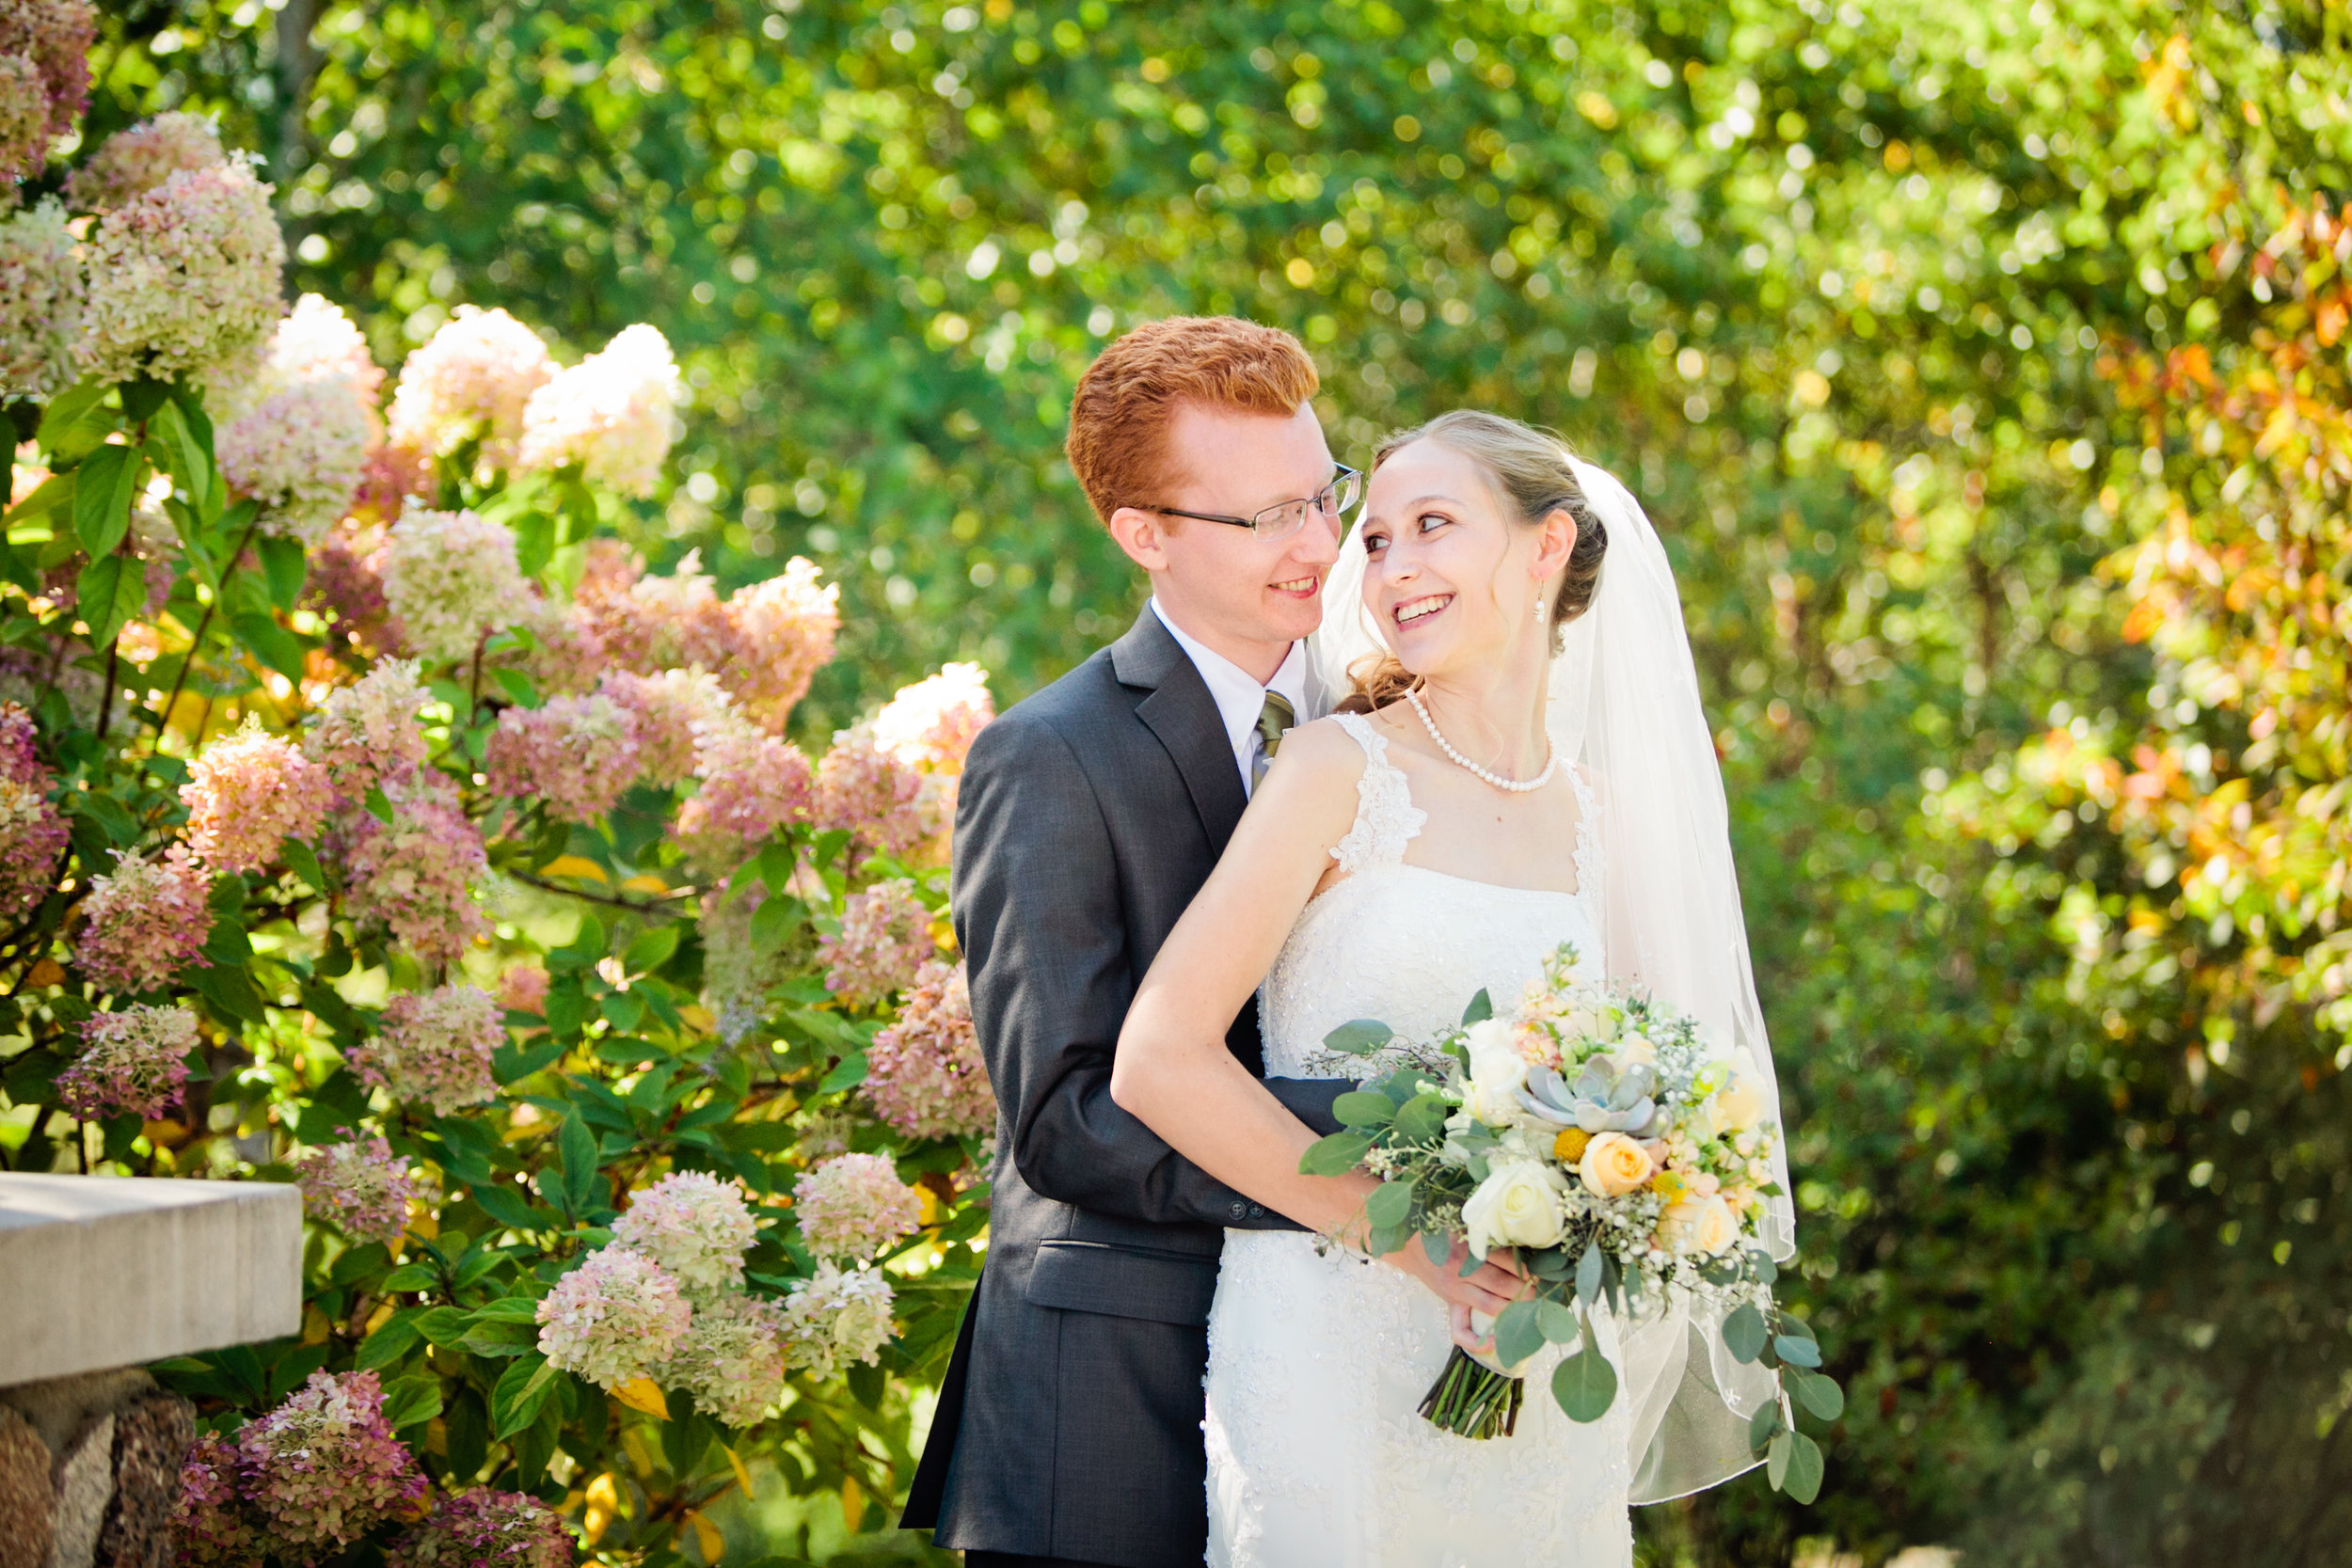 Amelia is a professional  wedding and portrait  photographer in Des Moines, Iowa .